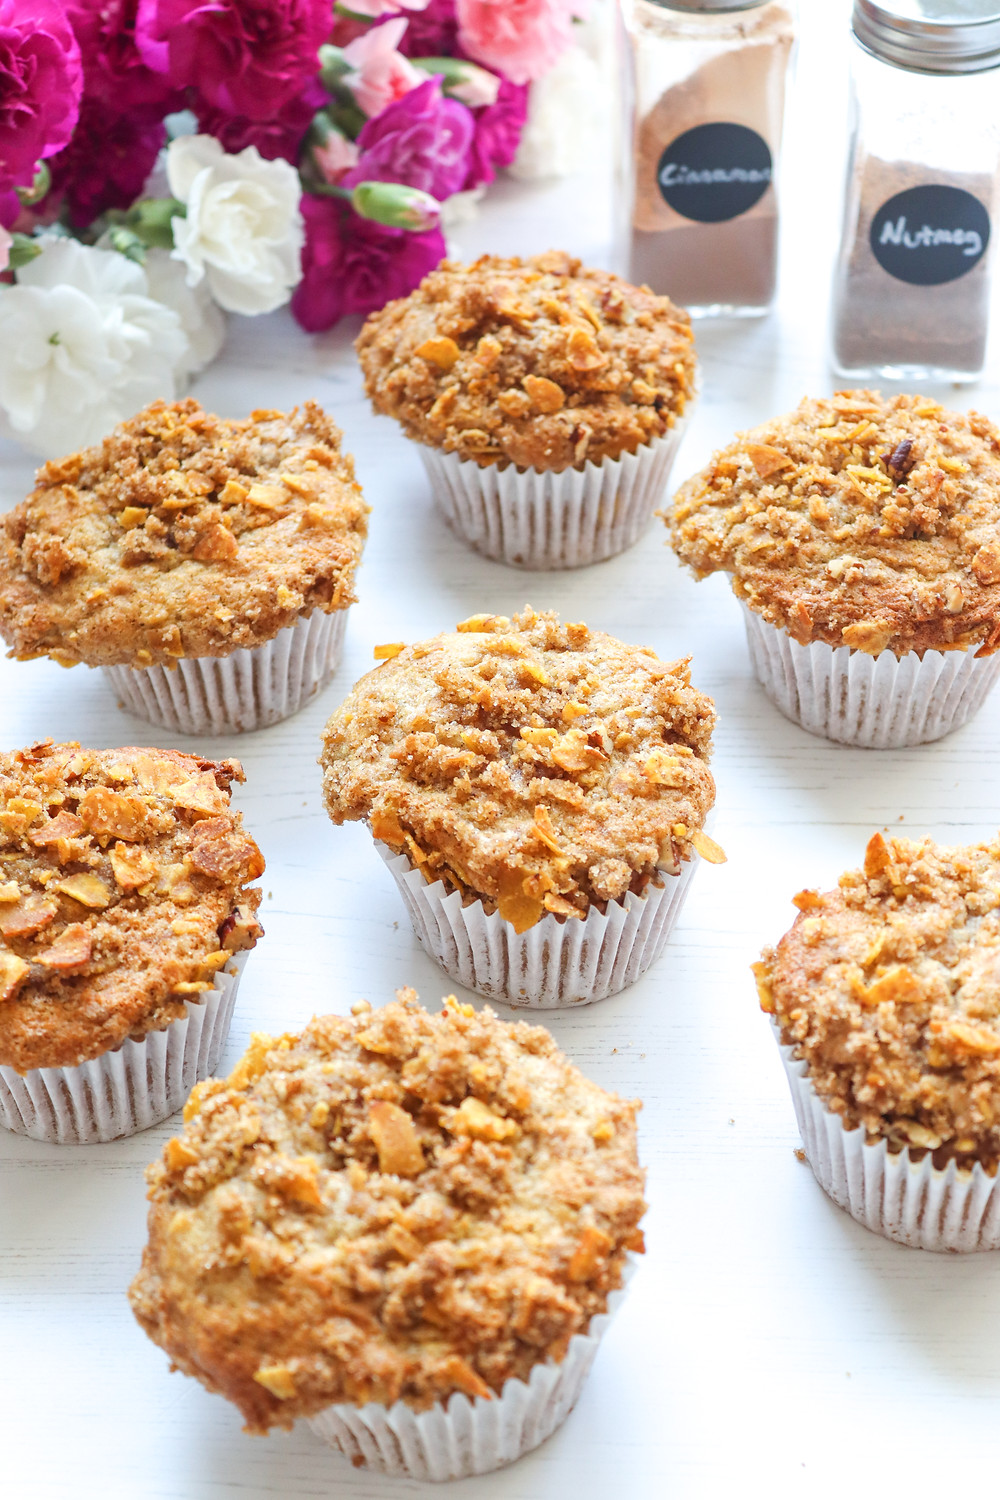 Food Photography by nb:social  – Plantain Muffins with a Plantain Streusel Topping using Mr Plantain's Sweet Cinnamon Crisps